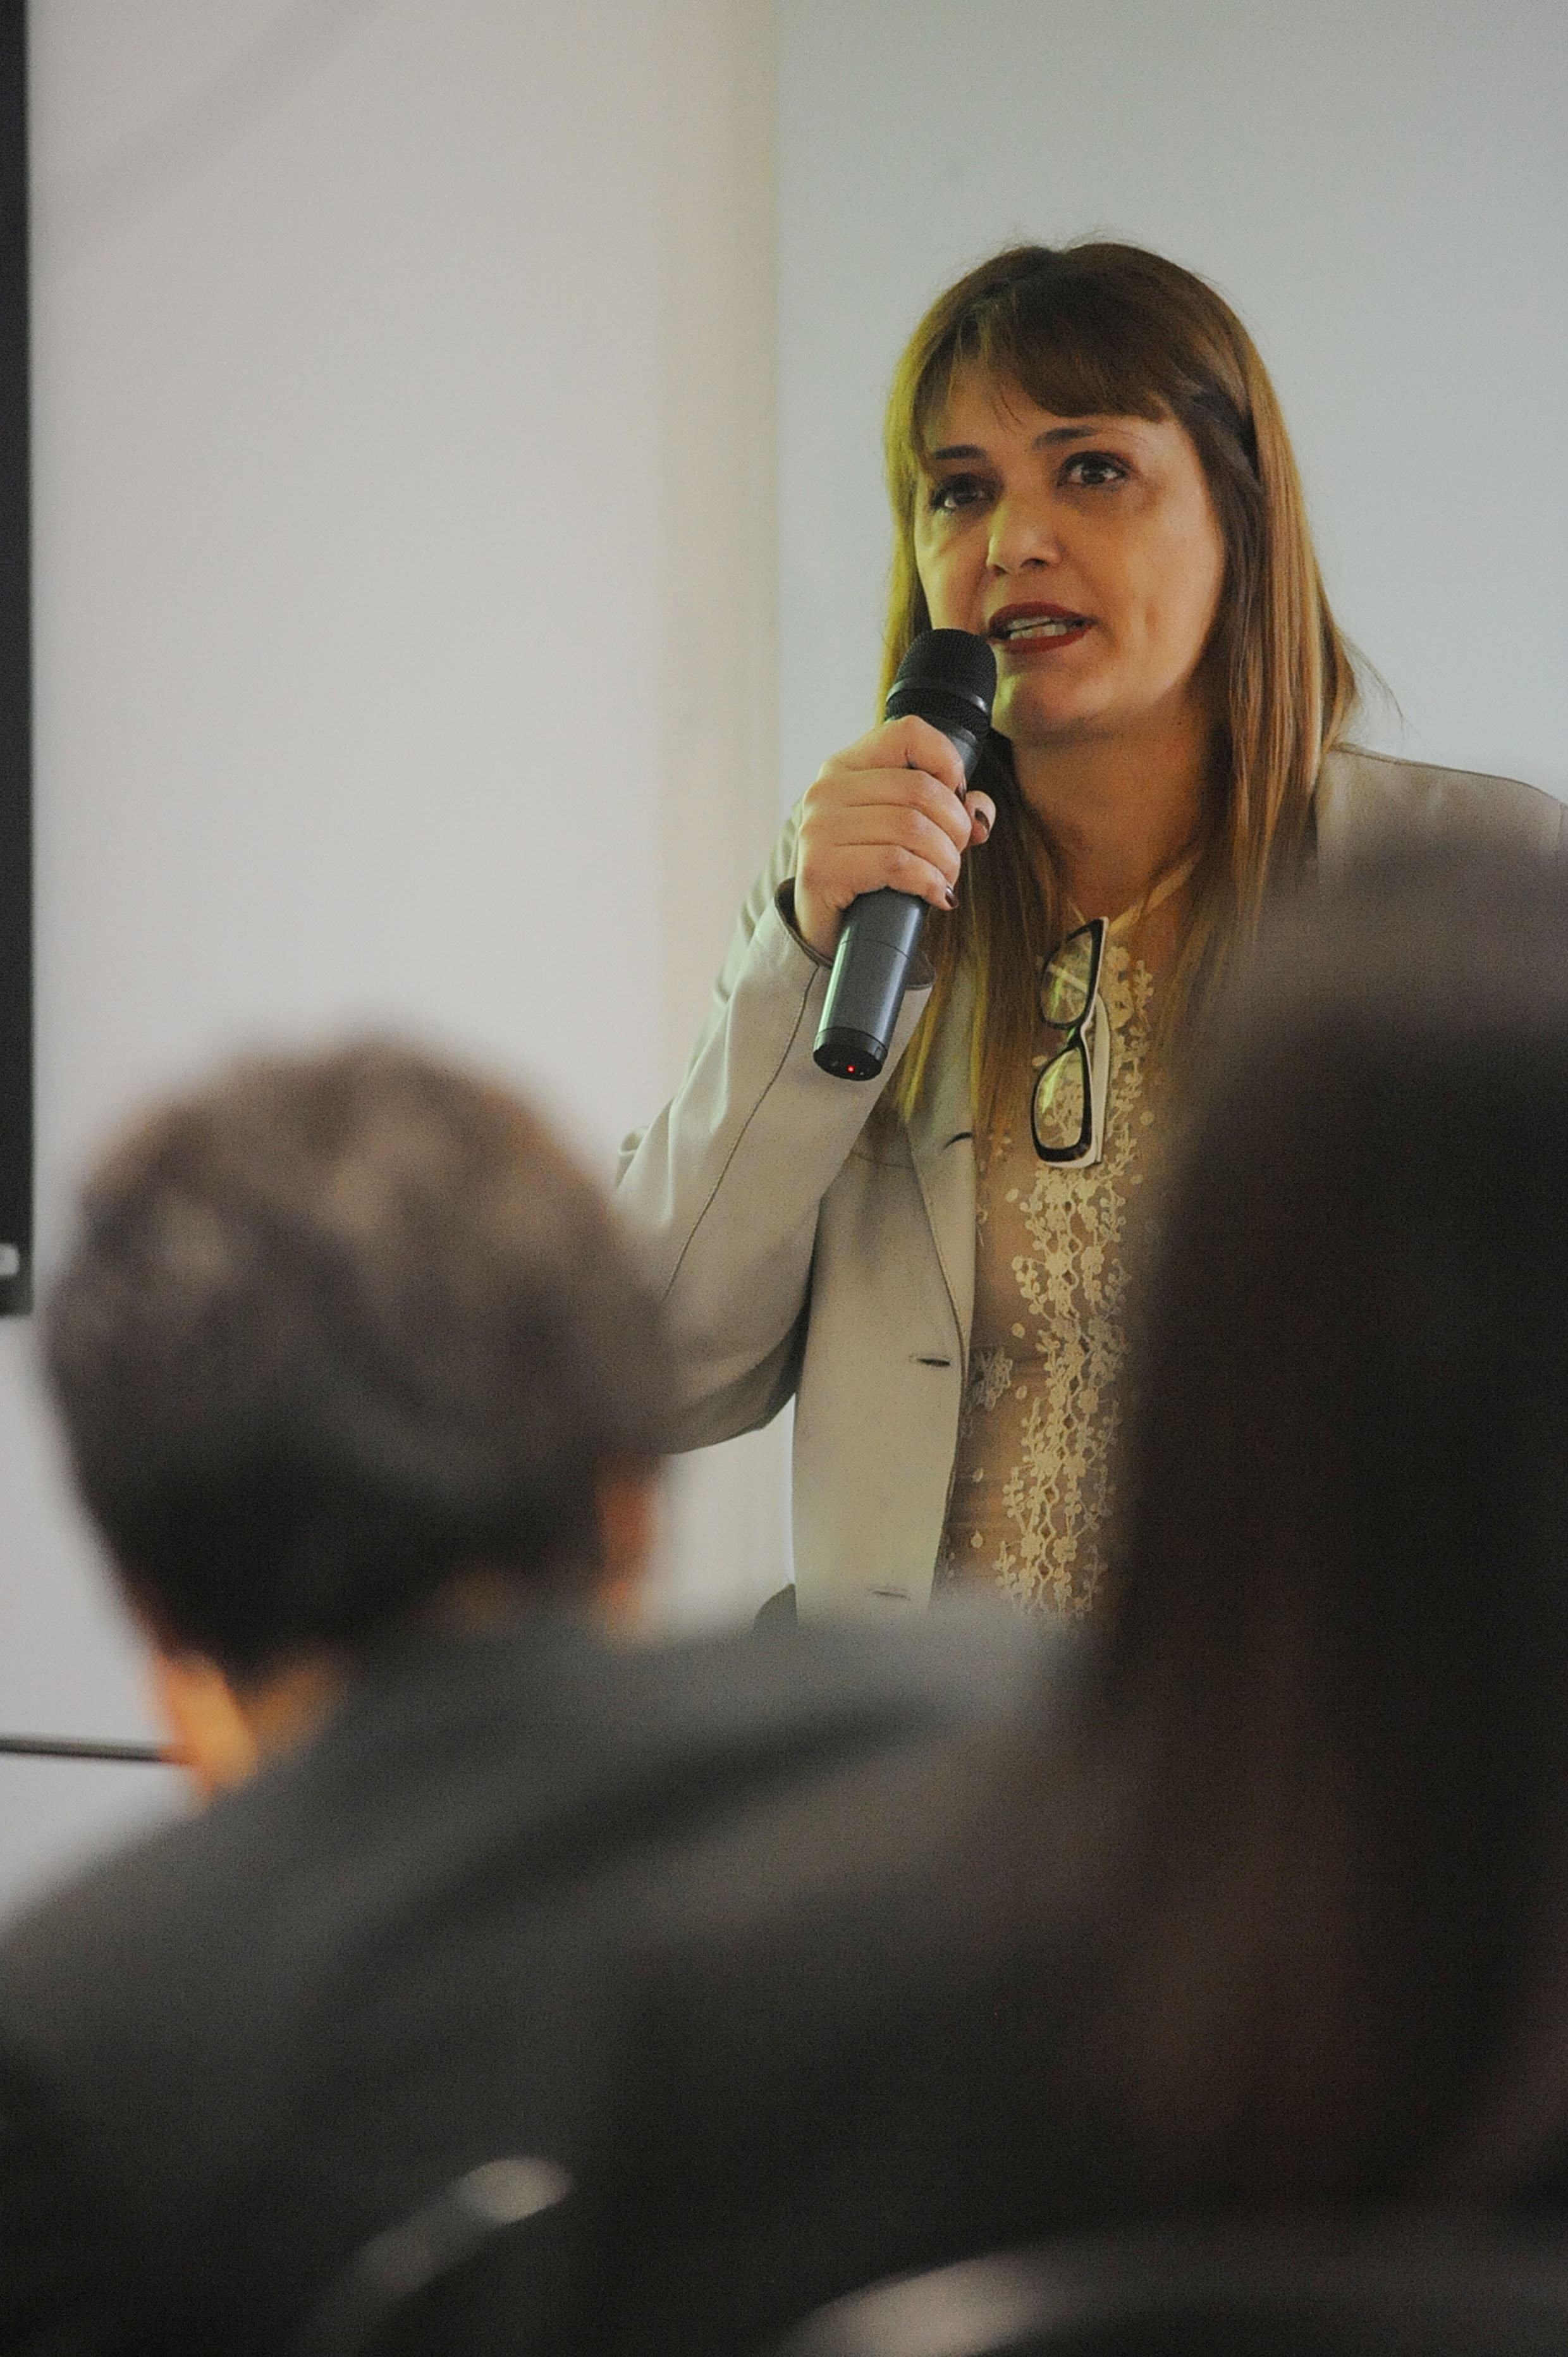 Cristiane Neto Nogueira <a style='float:right' href='https://www3.al.sp.gov.br/repositorio/noticia/N-11-2013/fg149418.jpg' target=_blank><img src='/_img/material-file-download-white.png' width='14px' alt='Clique para baixar a imagem'></a>